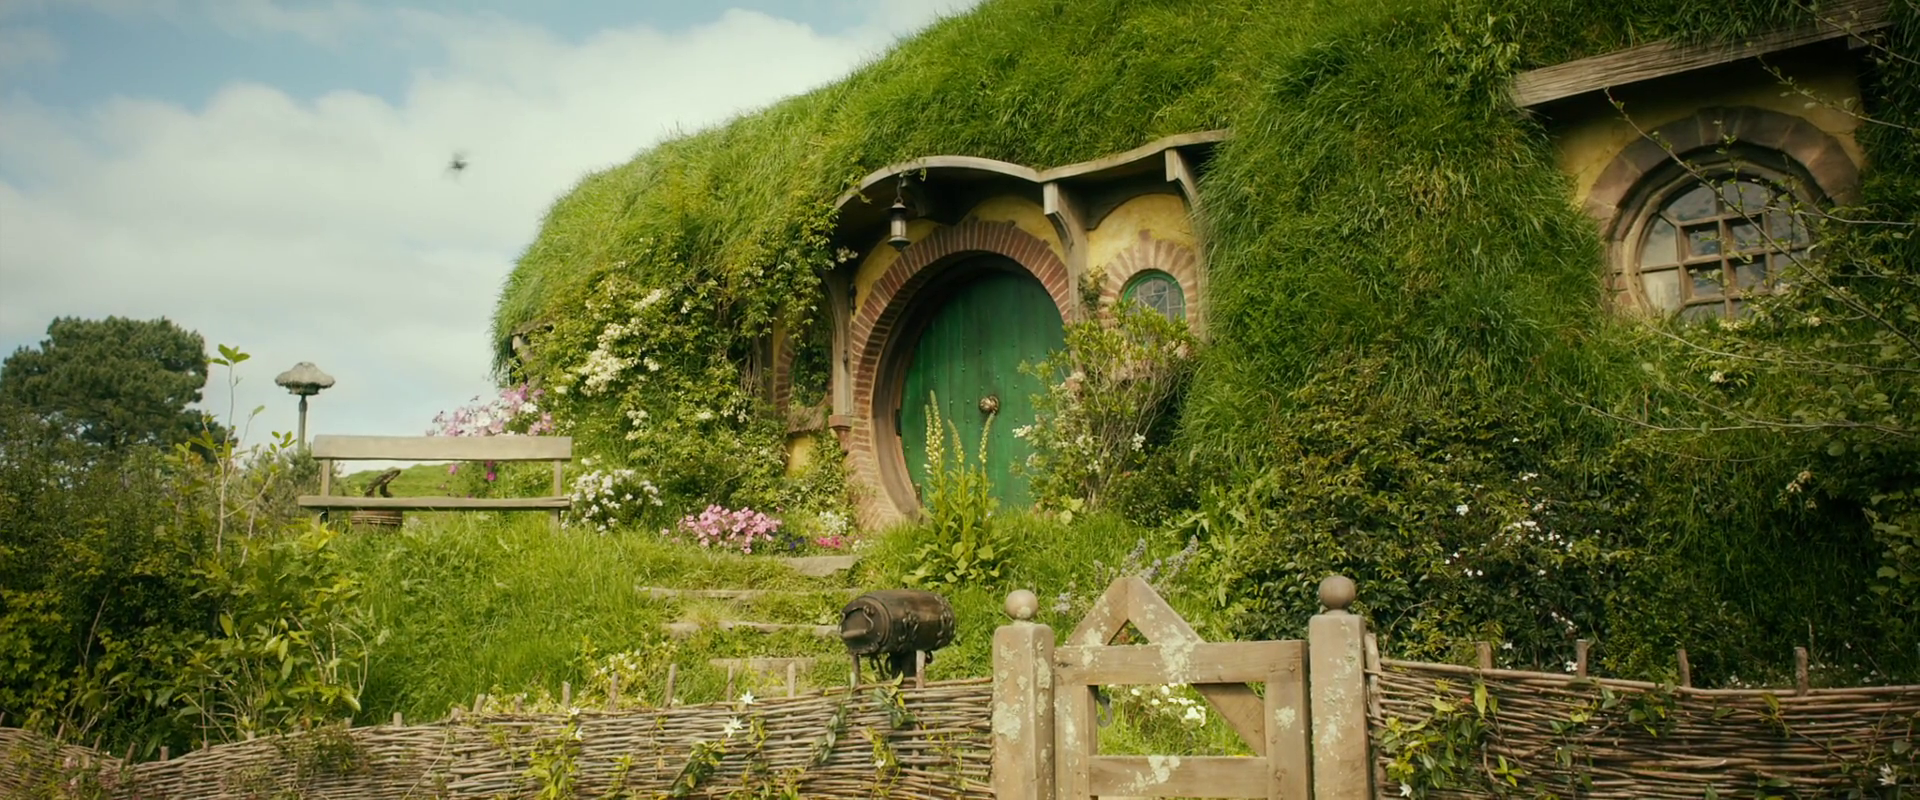 bag end - Lord Of The Rings Hobbit Home